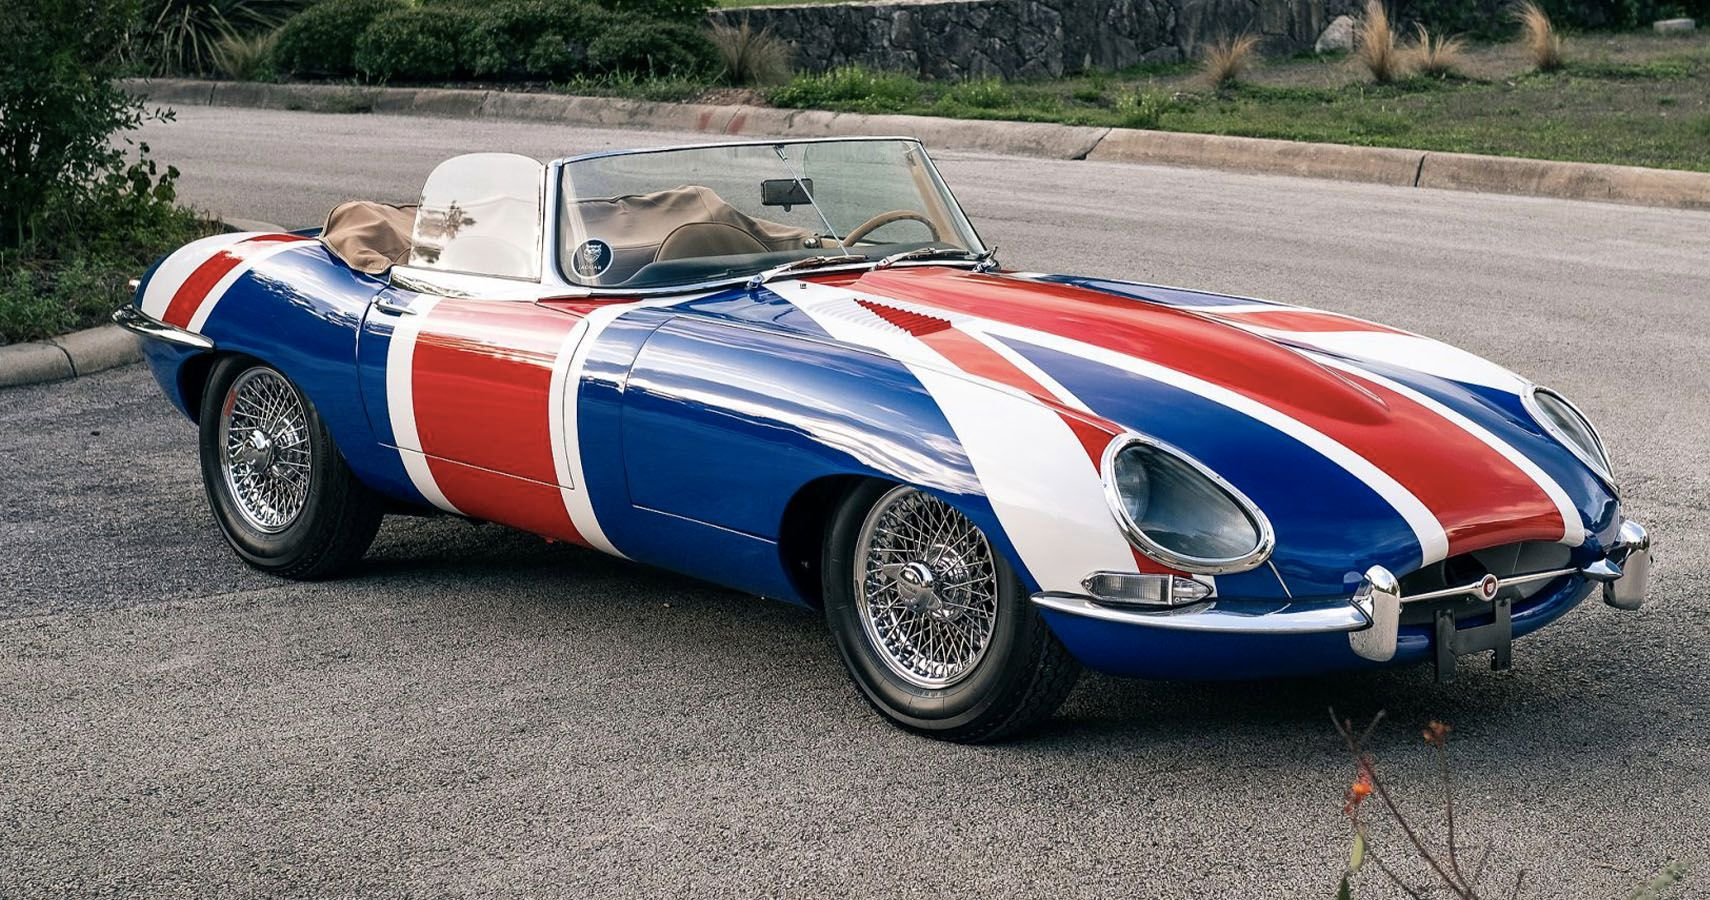 Groovy Baby! Austin Powers Inspired Jaguar XKE Pops Up For Sale